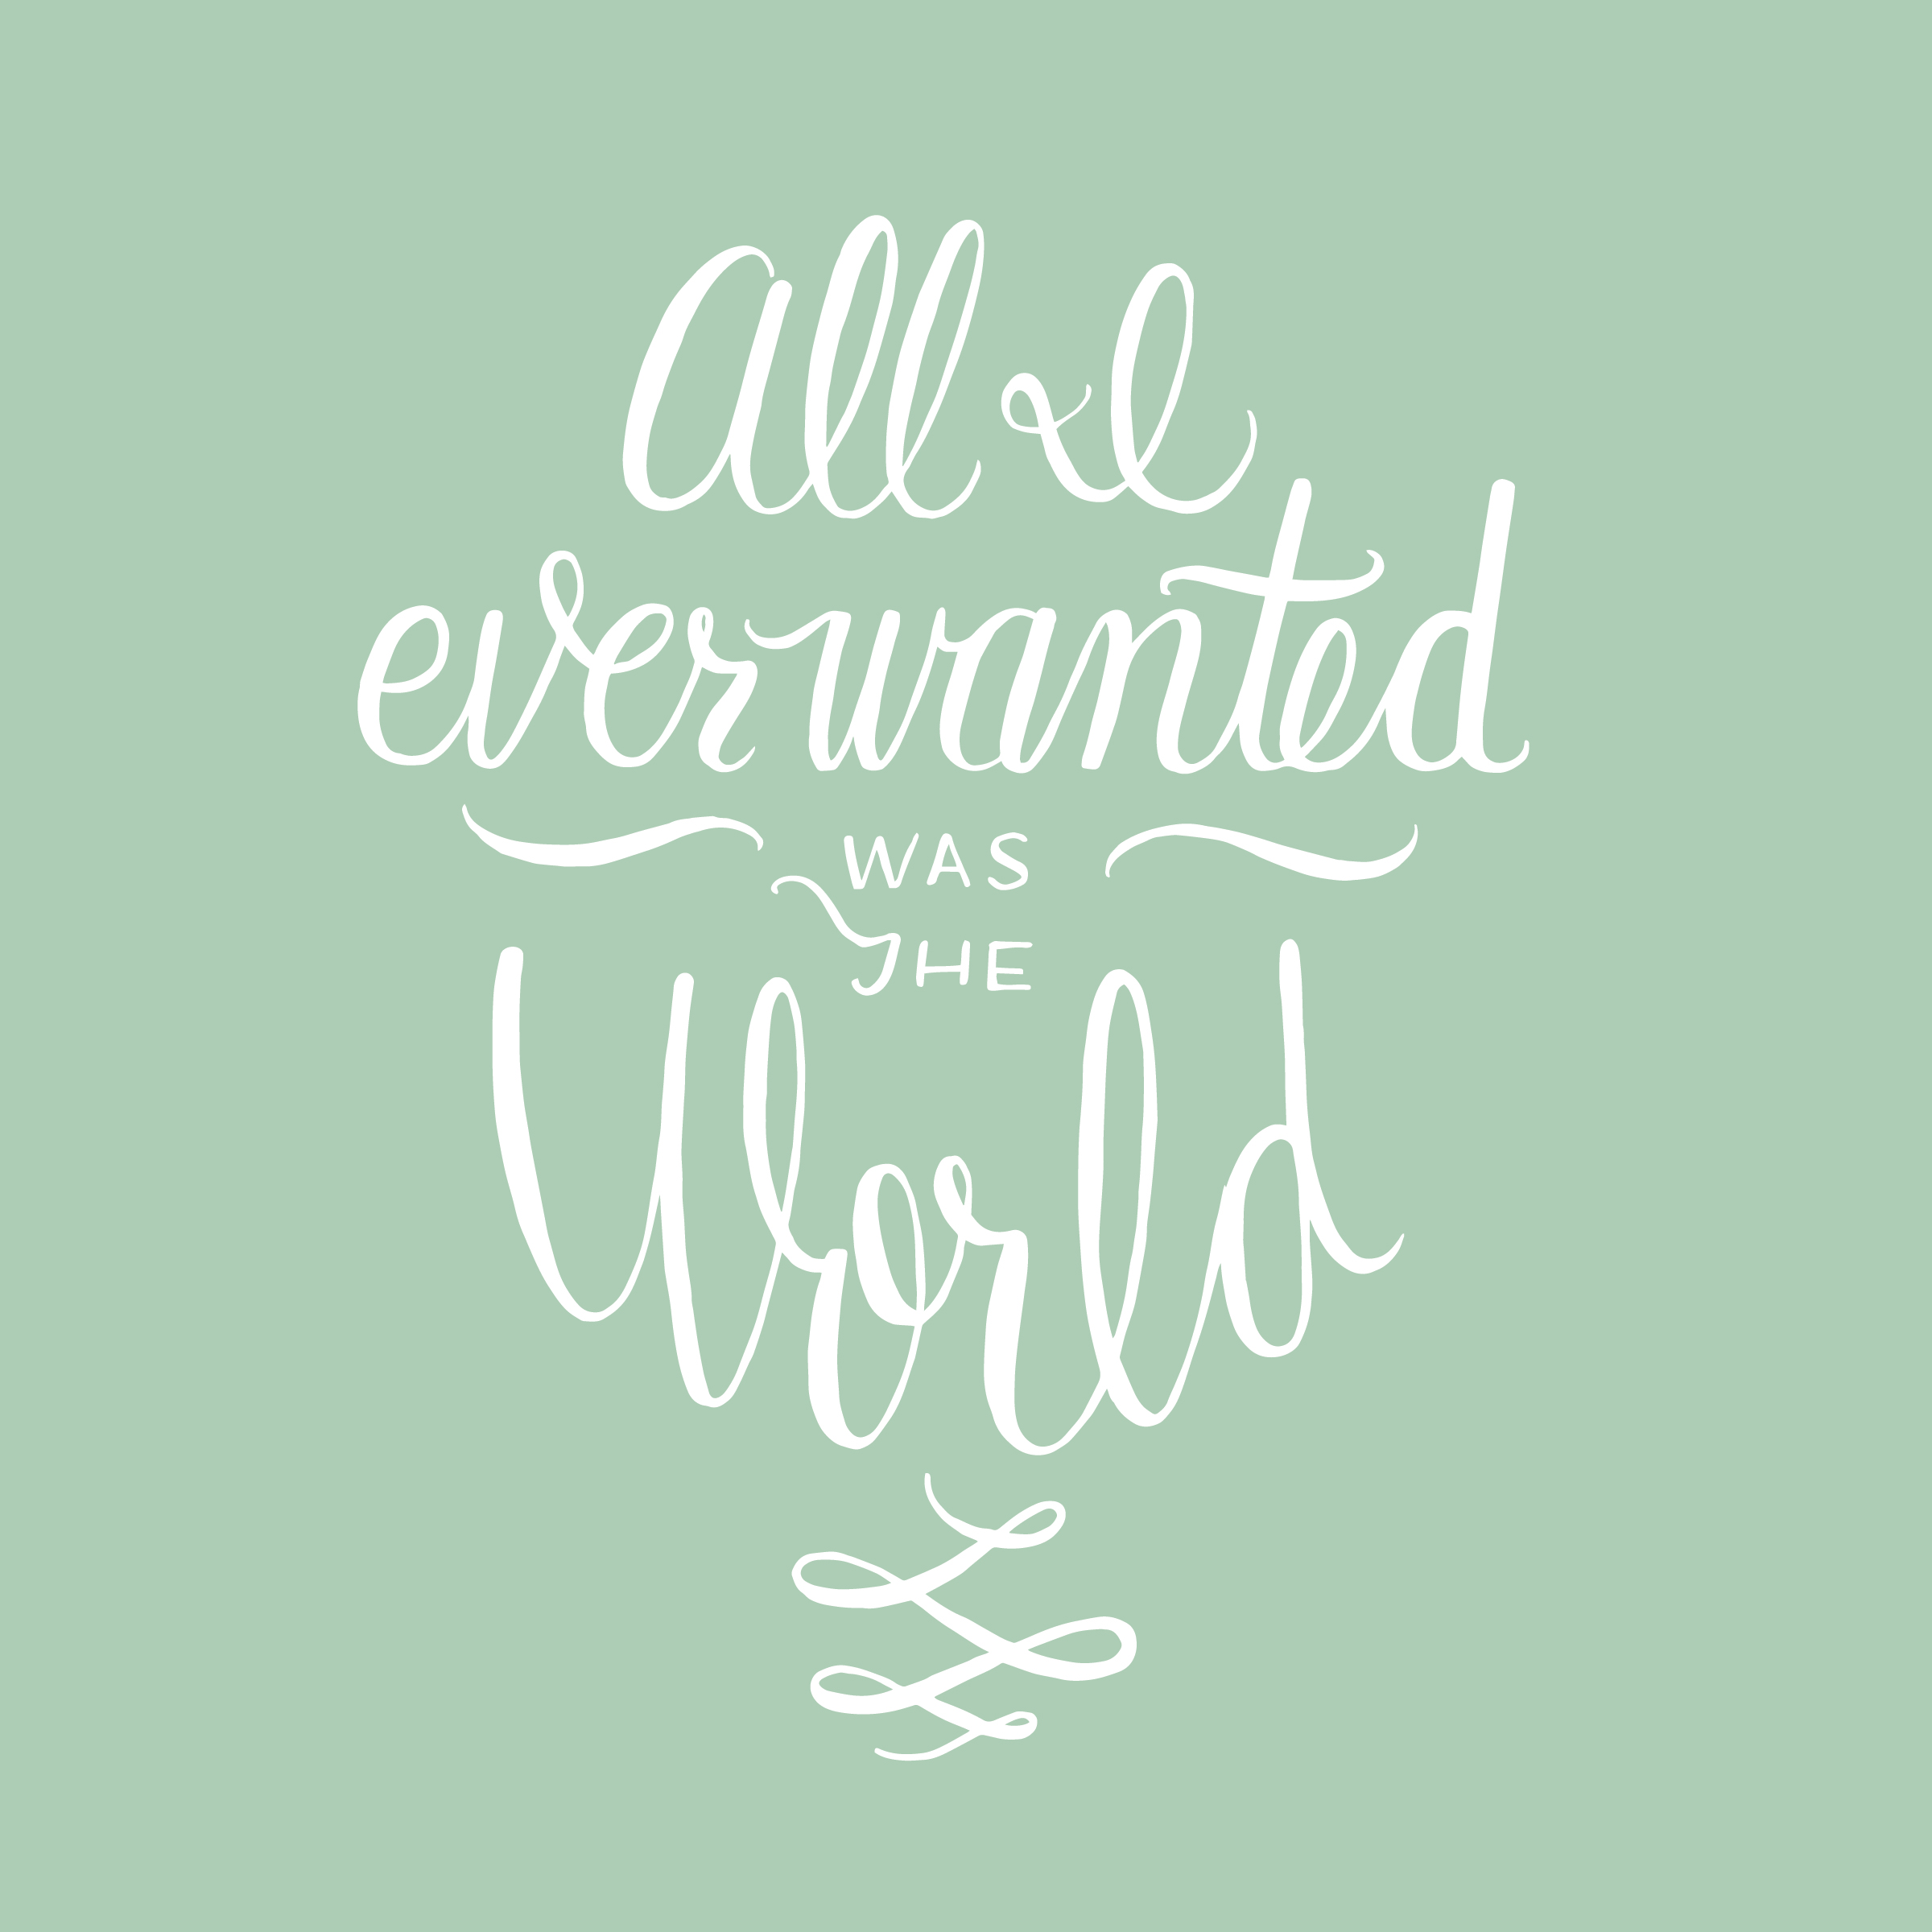 All I Ever Wanted Was The World - andreacrofts.com.jpg